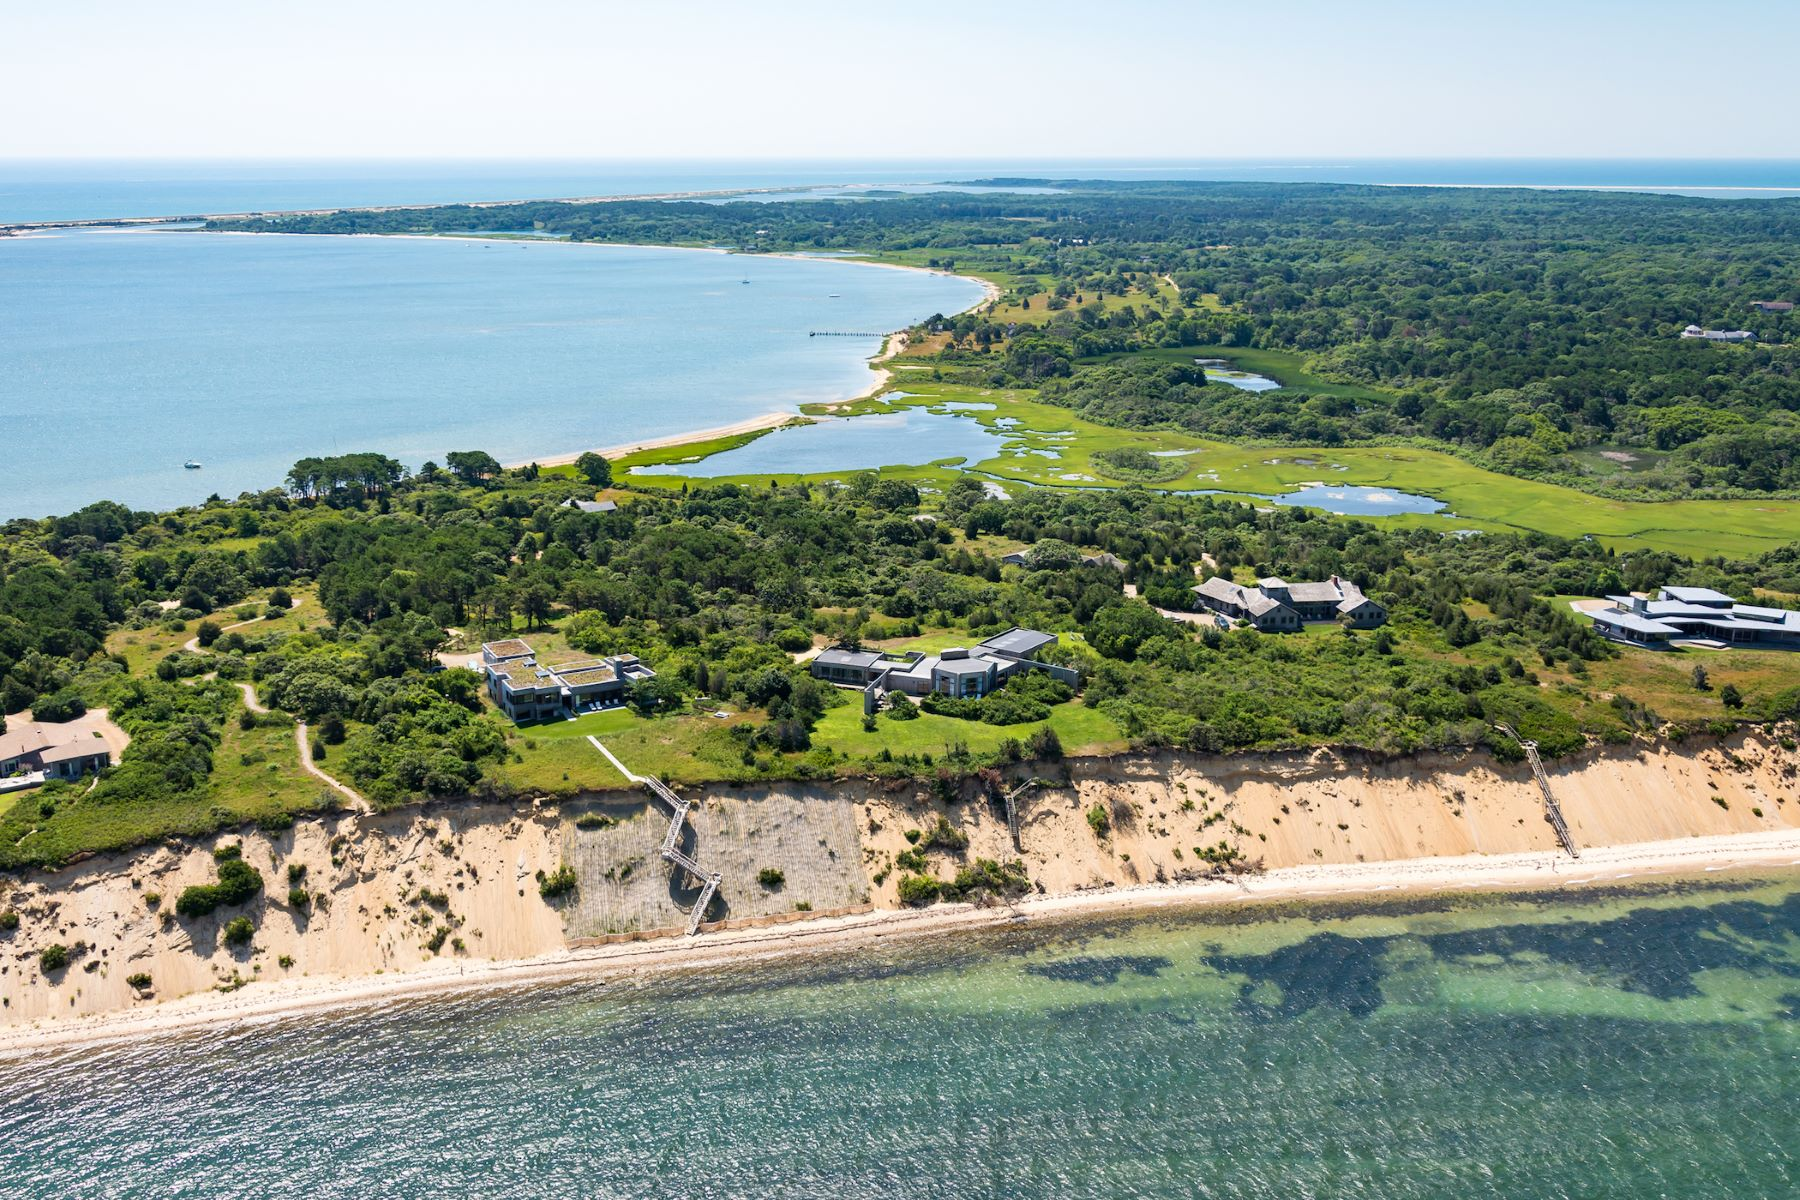 Single Family Home for Sale at Waterfront perfection on Martha's Vineyard 23 North Neck Road Edgartown, Massachusetts 02539 United States